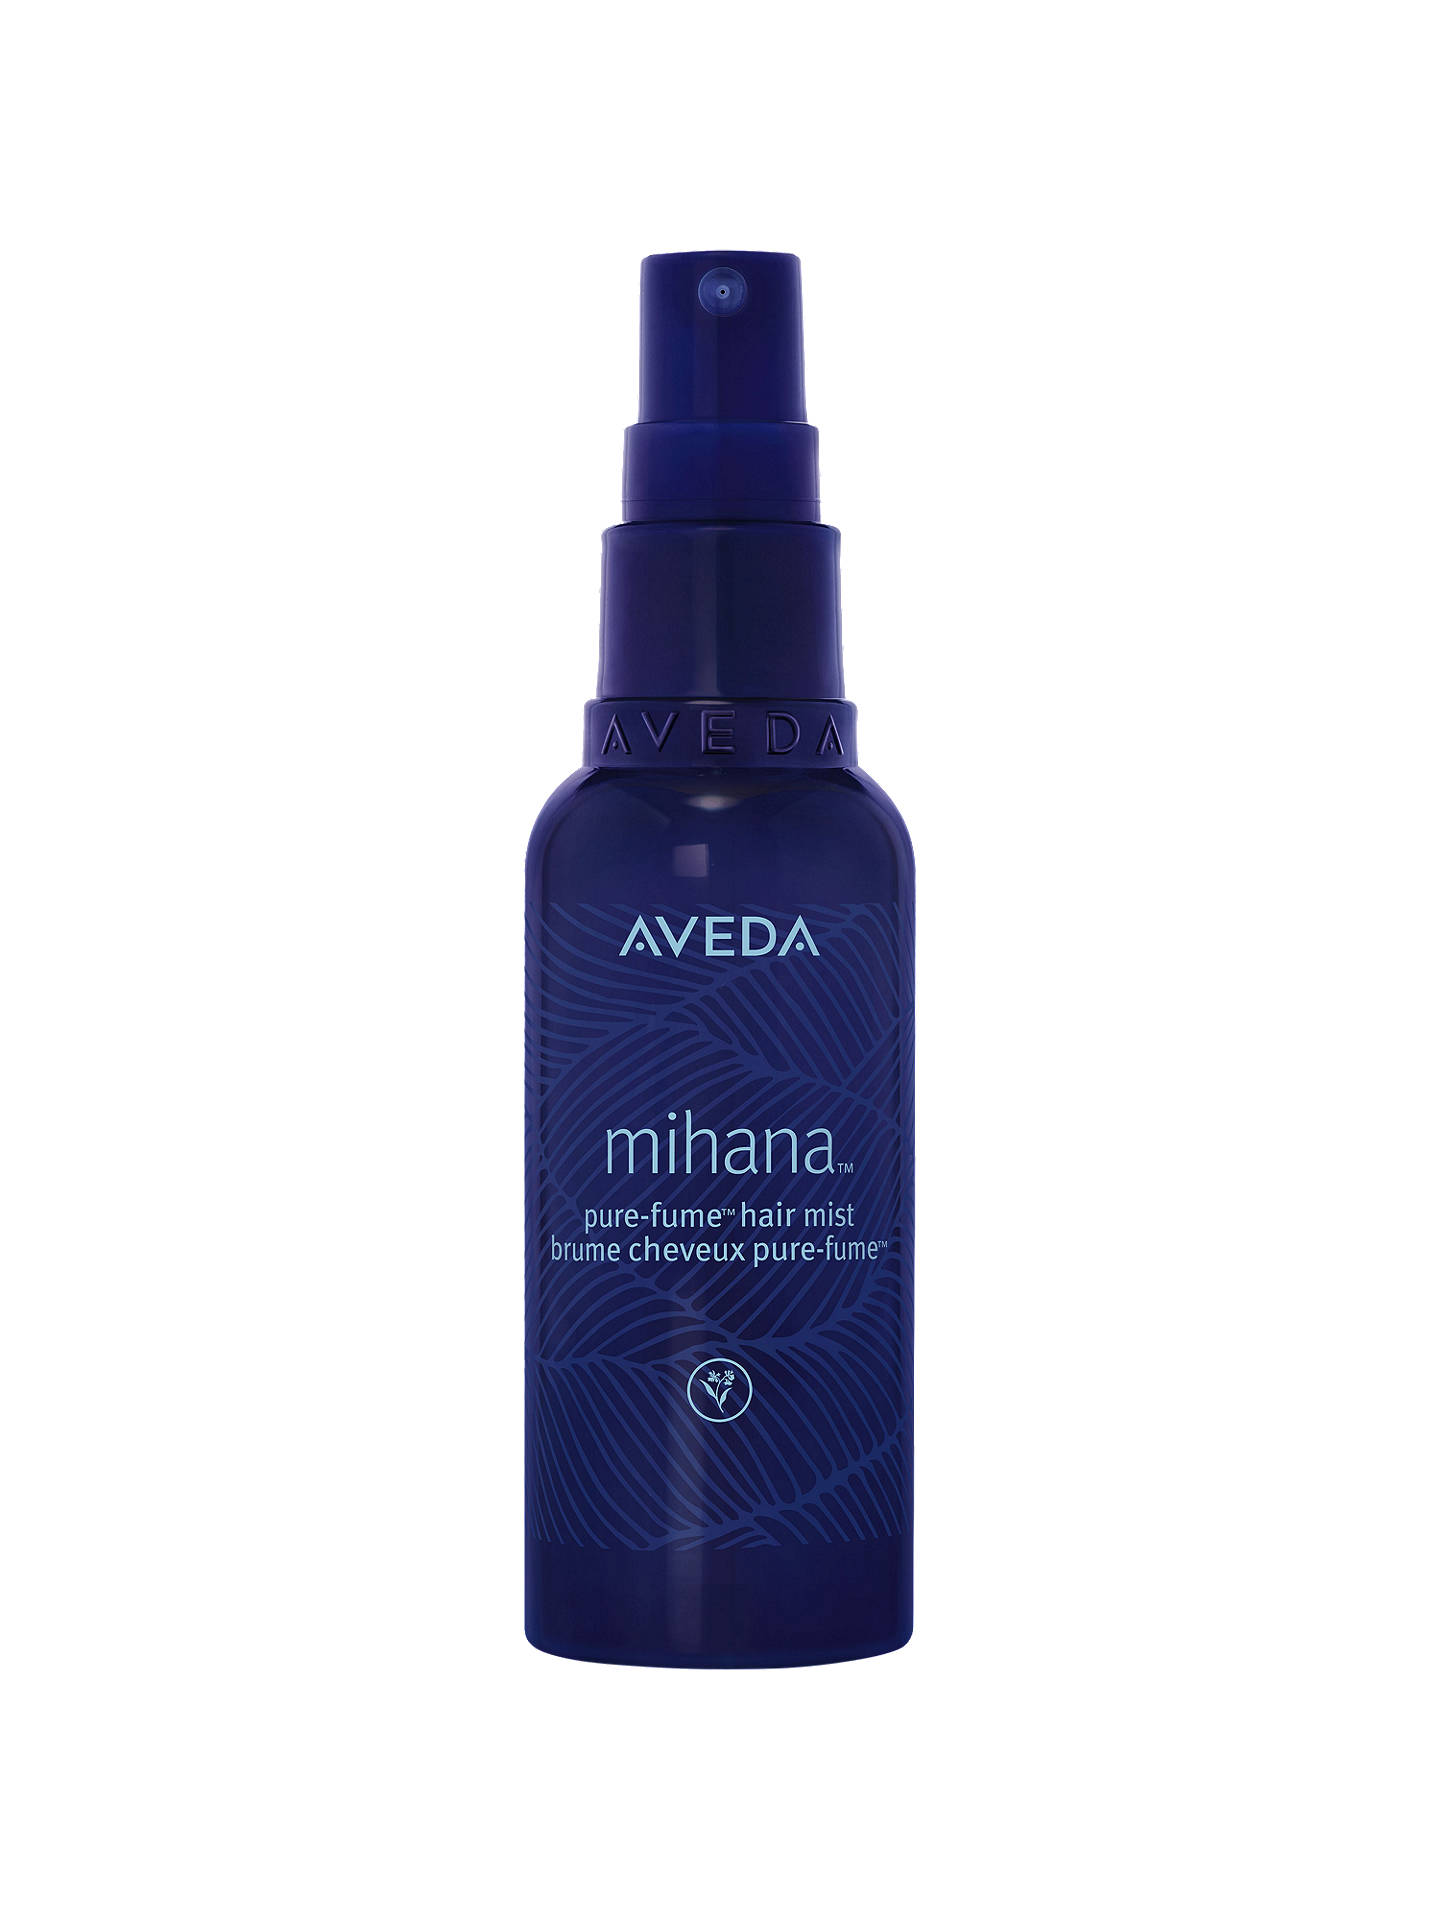 Buy AVEDA Mihana Pure-Fume Hair Mist, 100ml Online at johnlewis.com